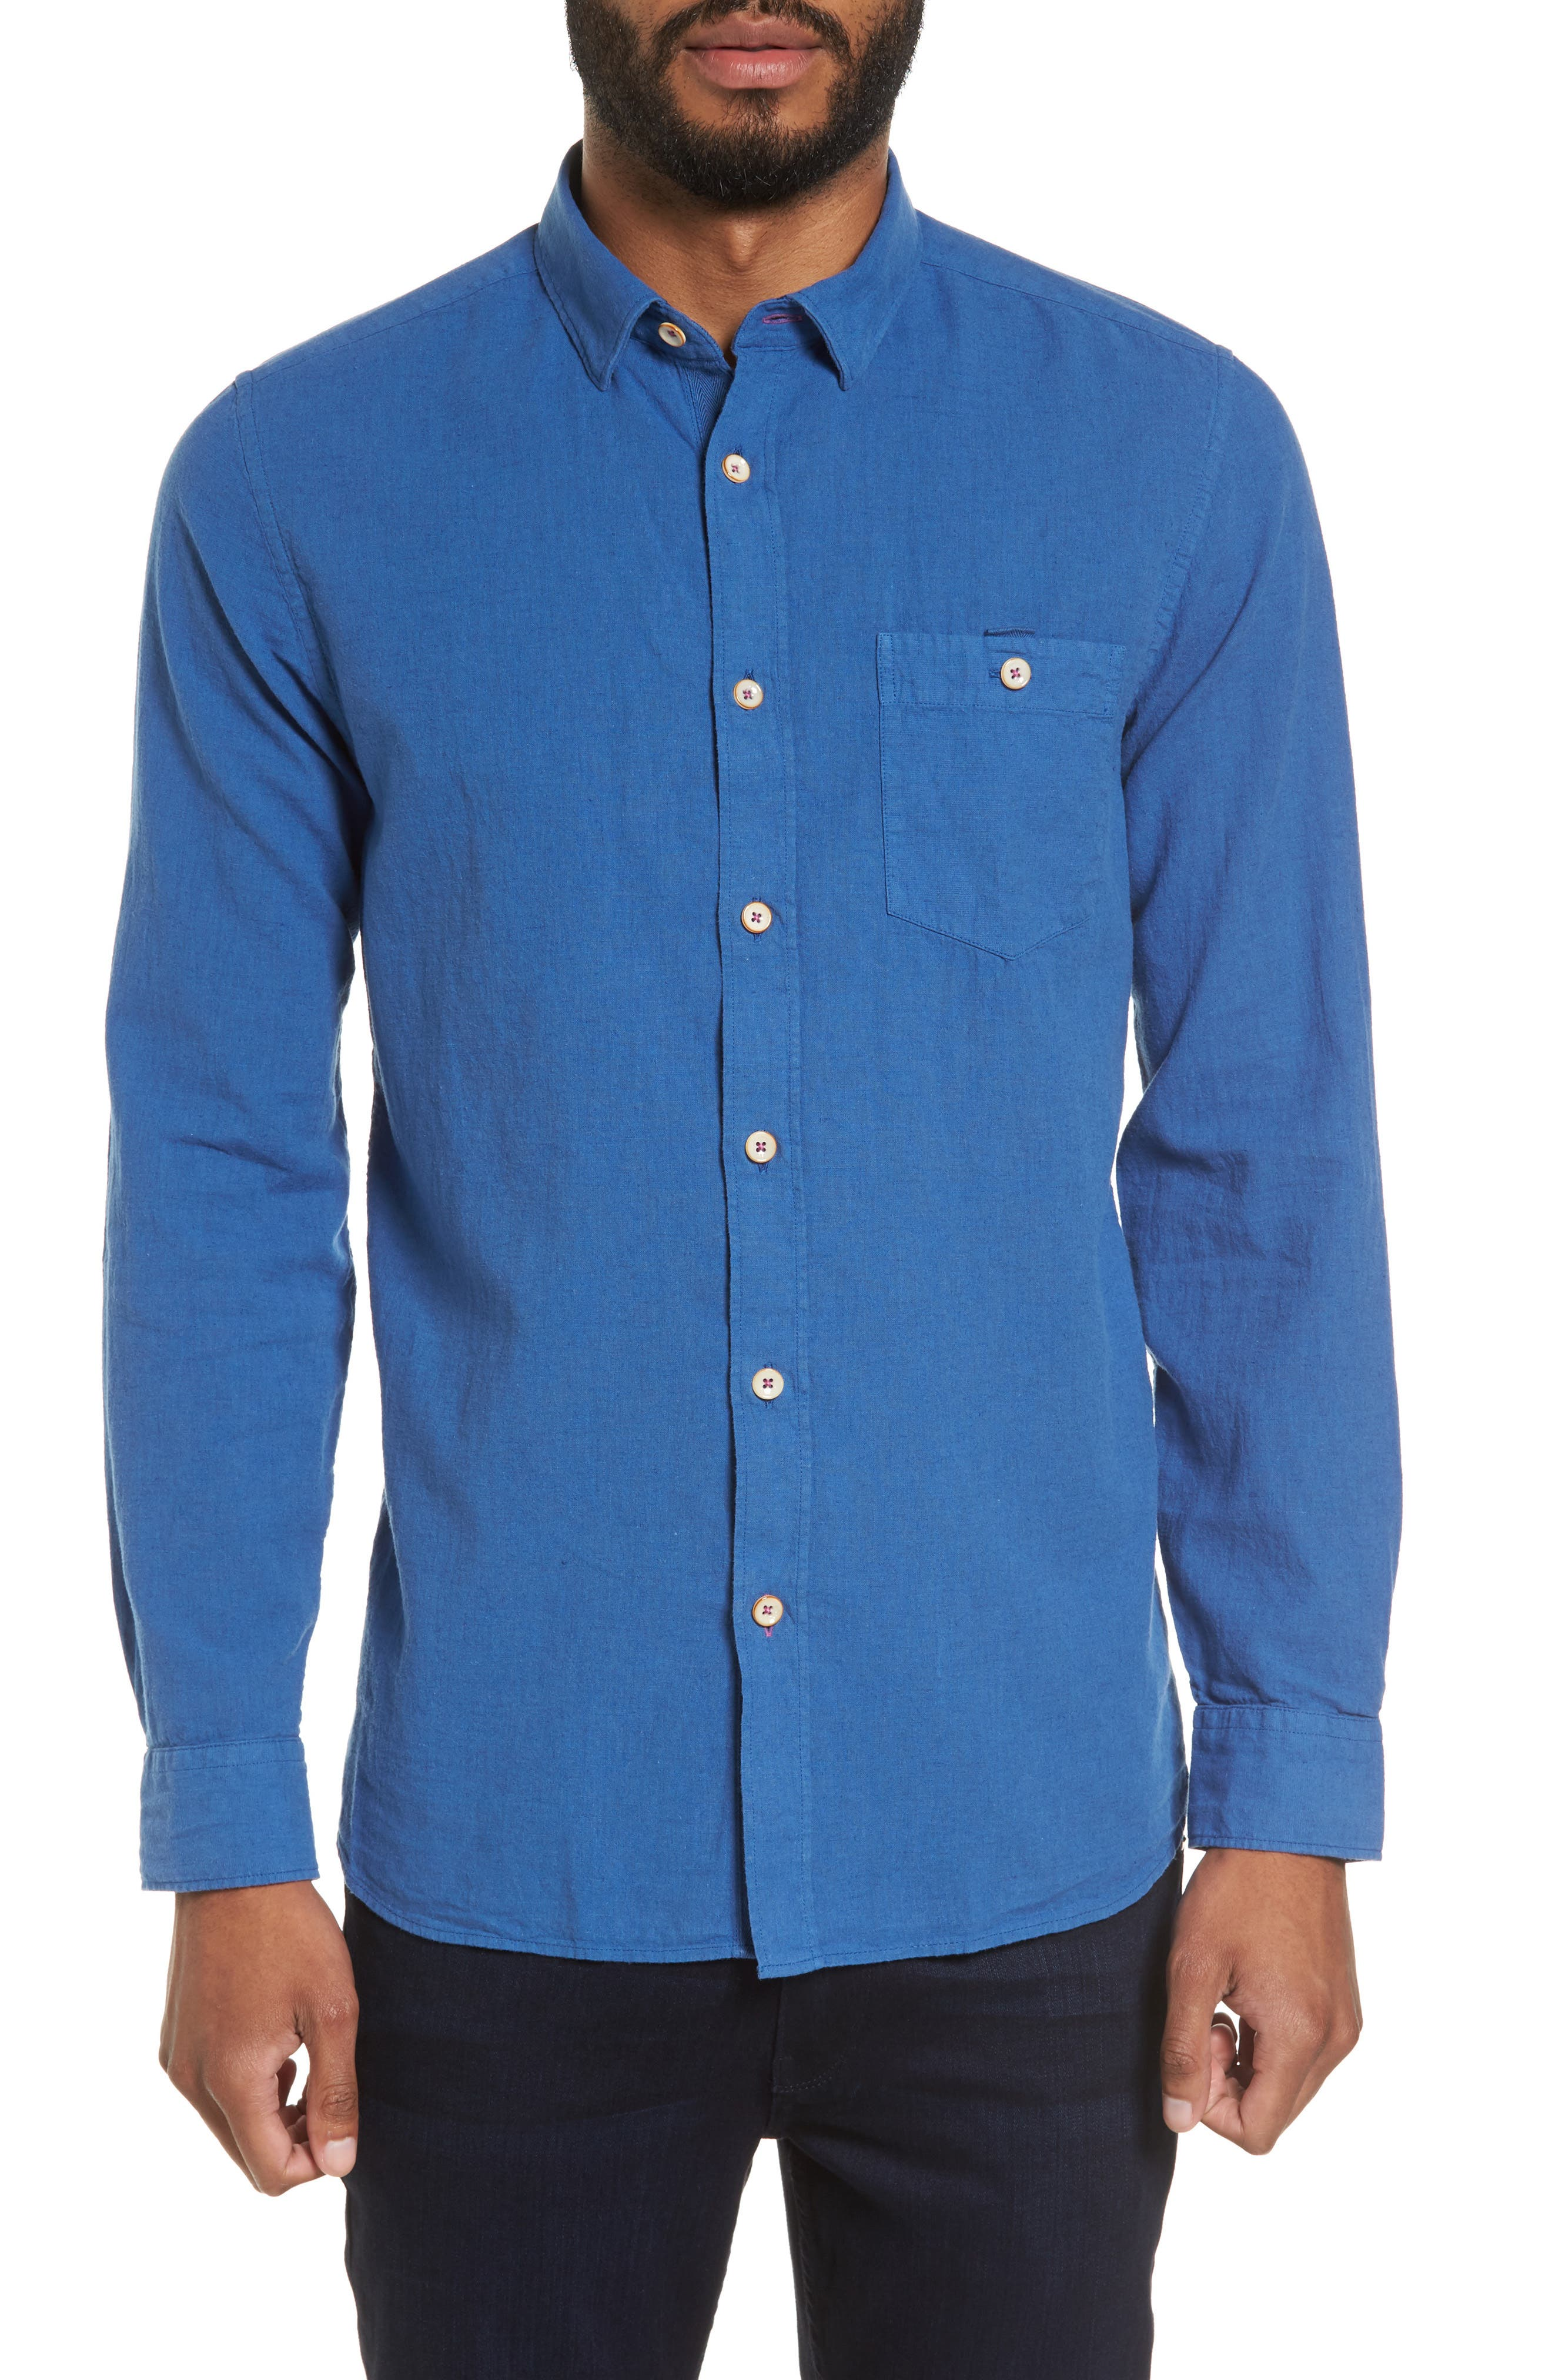 TED BAKER LONDON Carwash Modern Slim Fit Sport Shirt